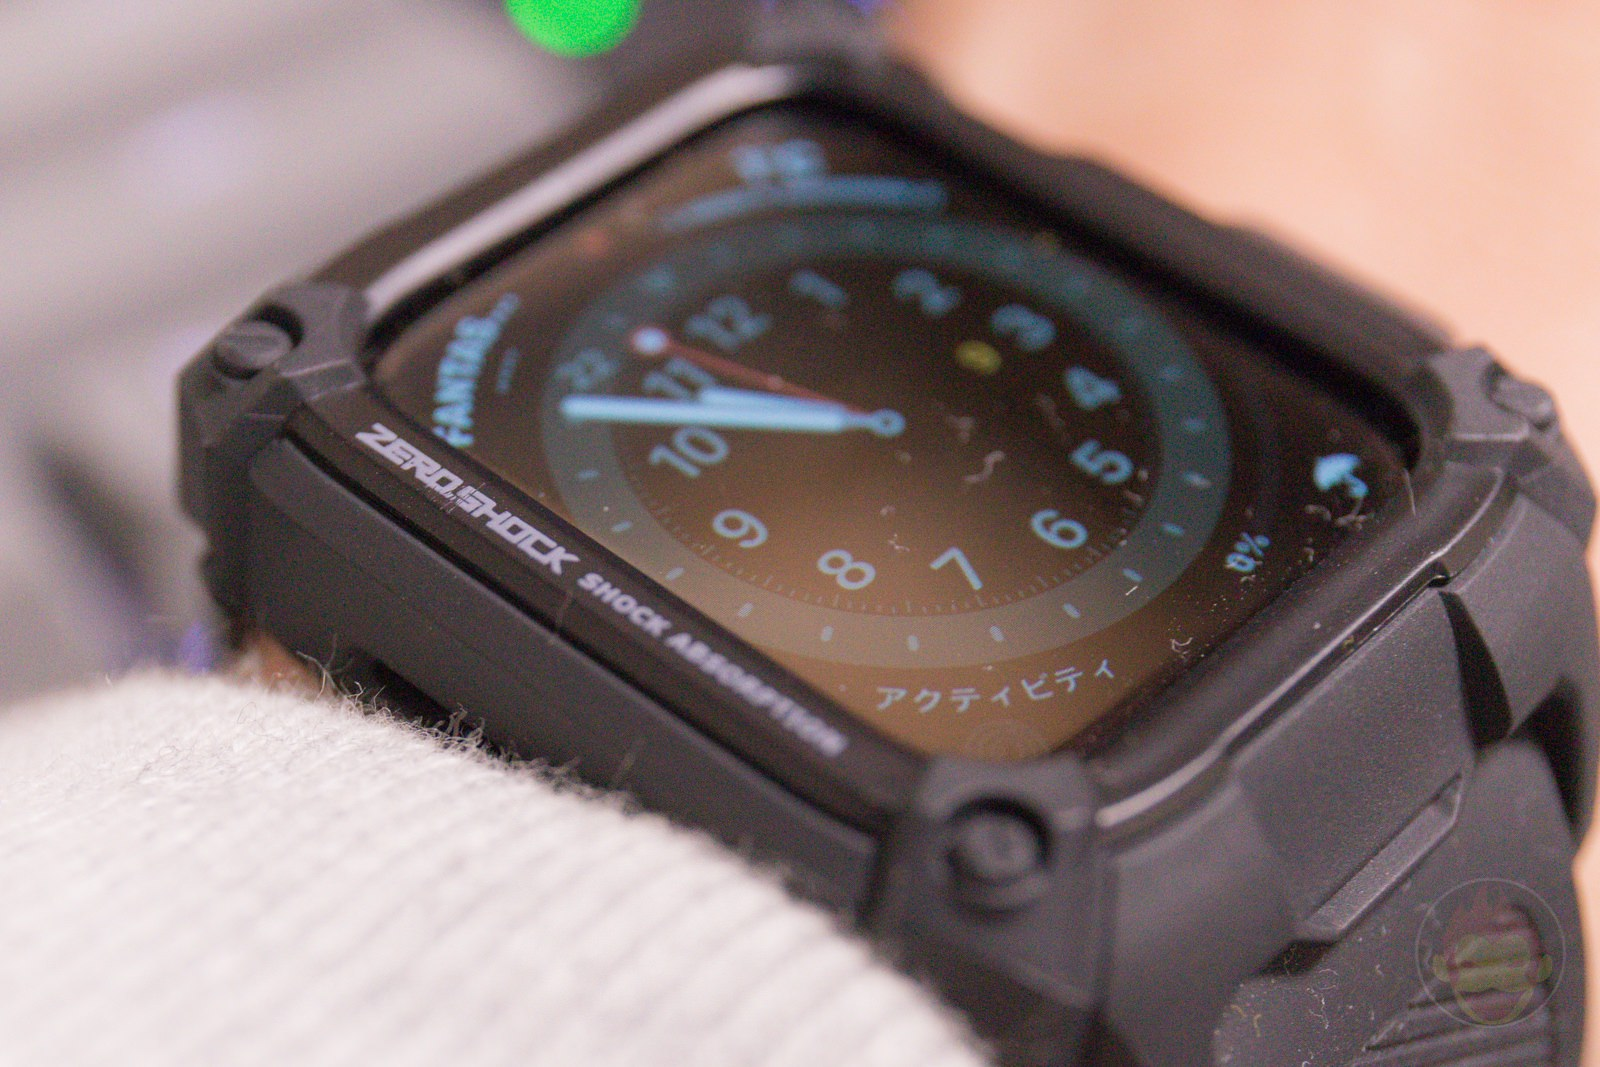 Apple Watch G SHOCK Elecom Case and UAG Band Review 13